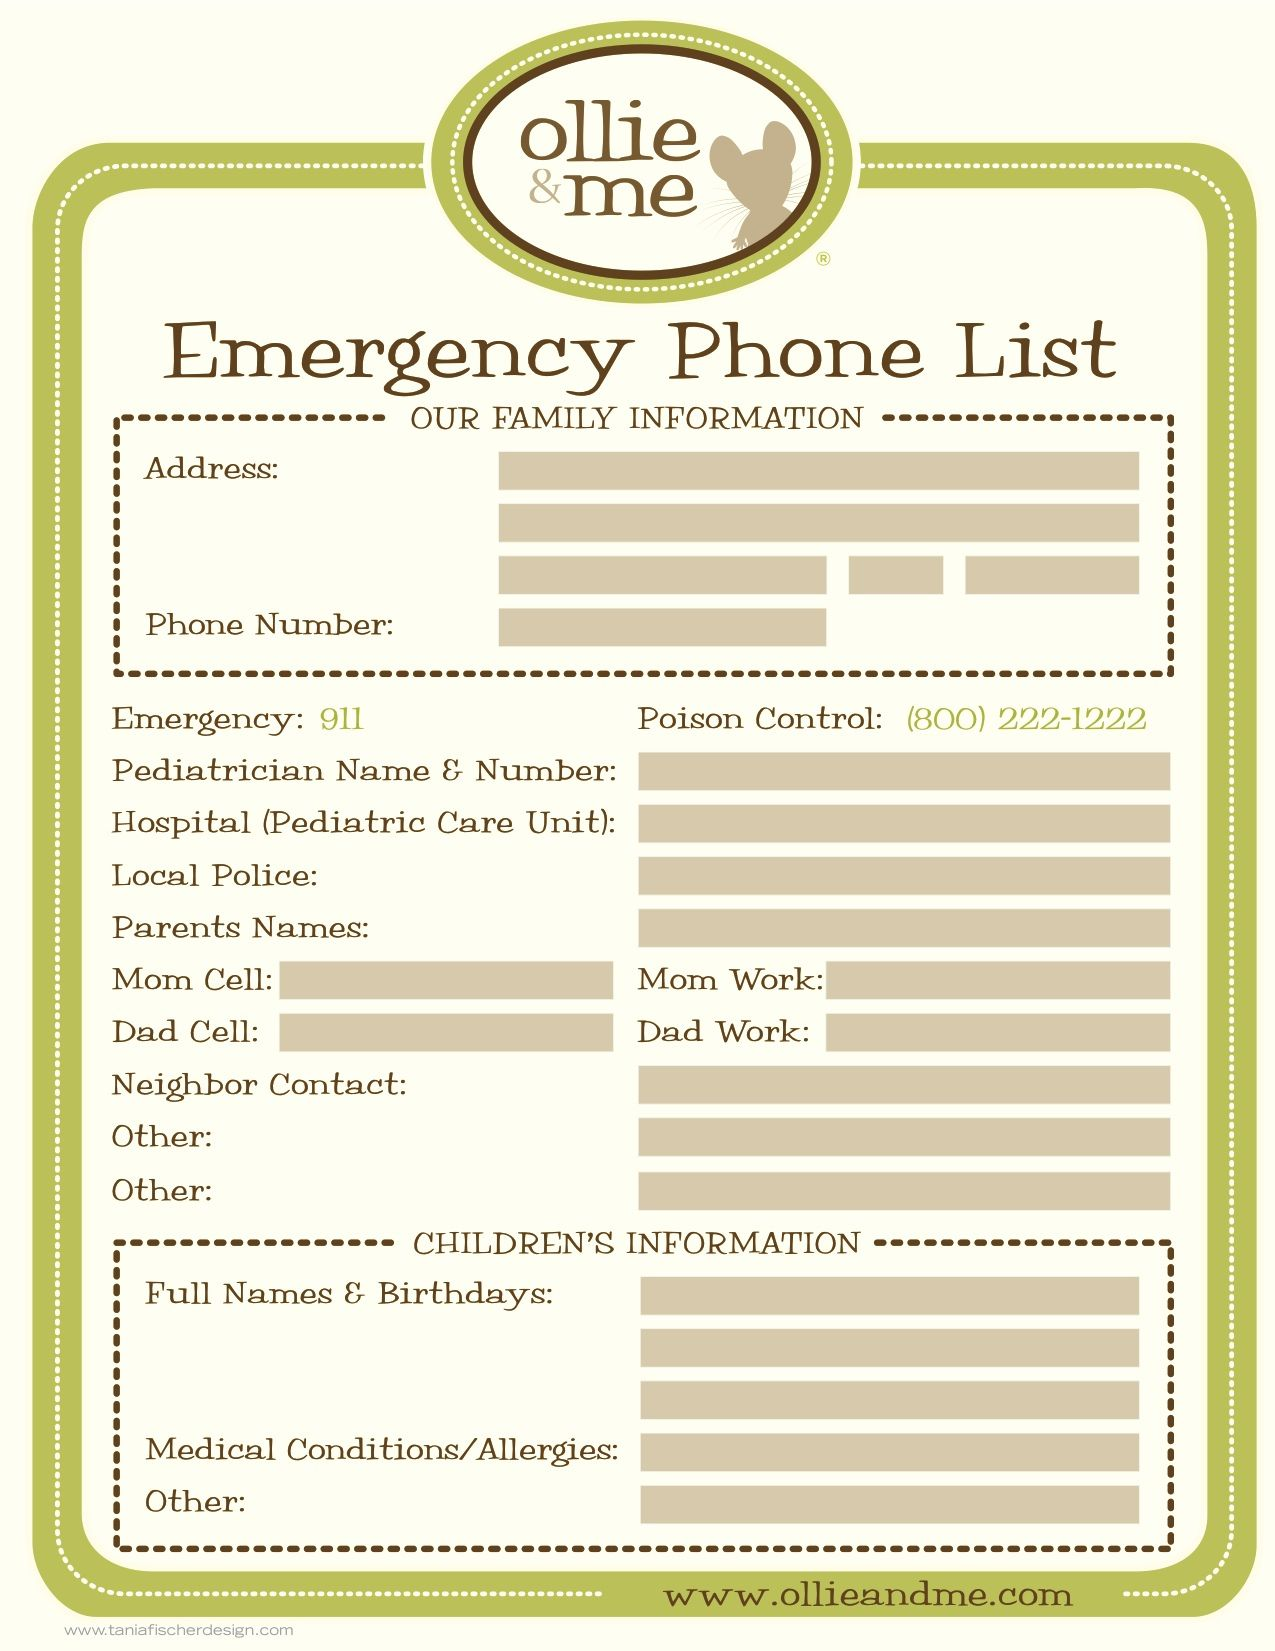 suggestions online images of emergency phone numbers list emergency phone list for your babysitter kid stuff